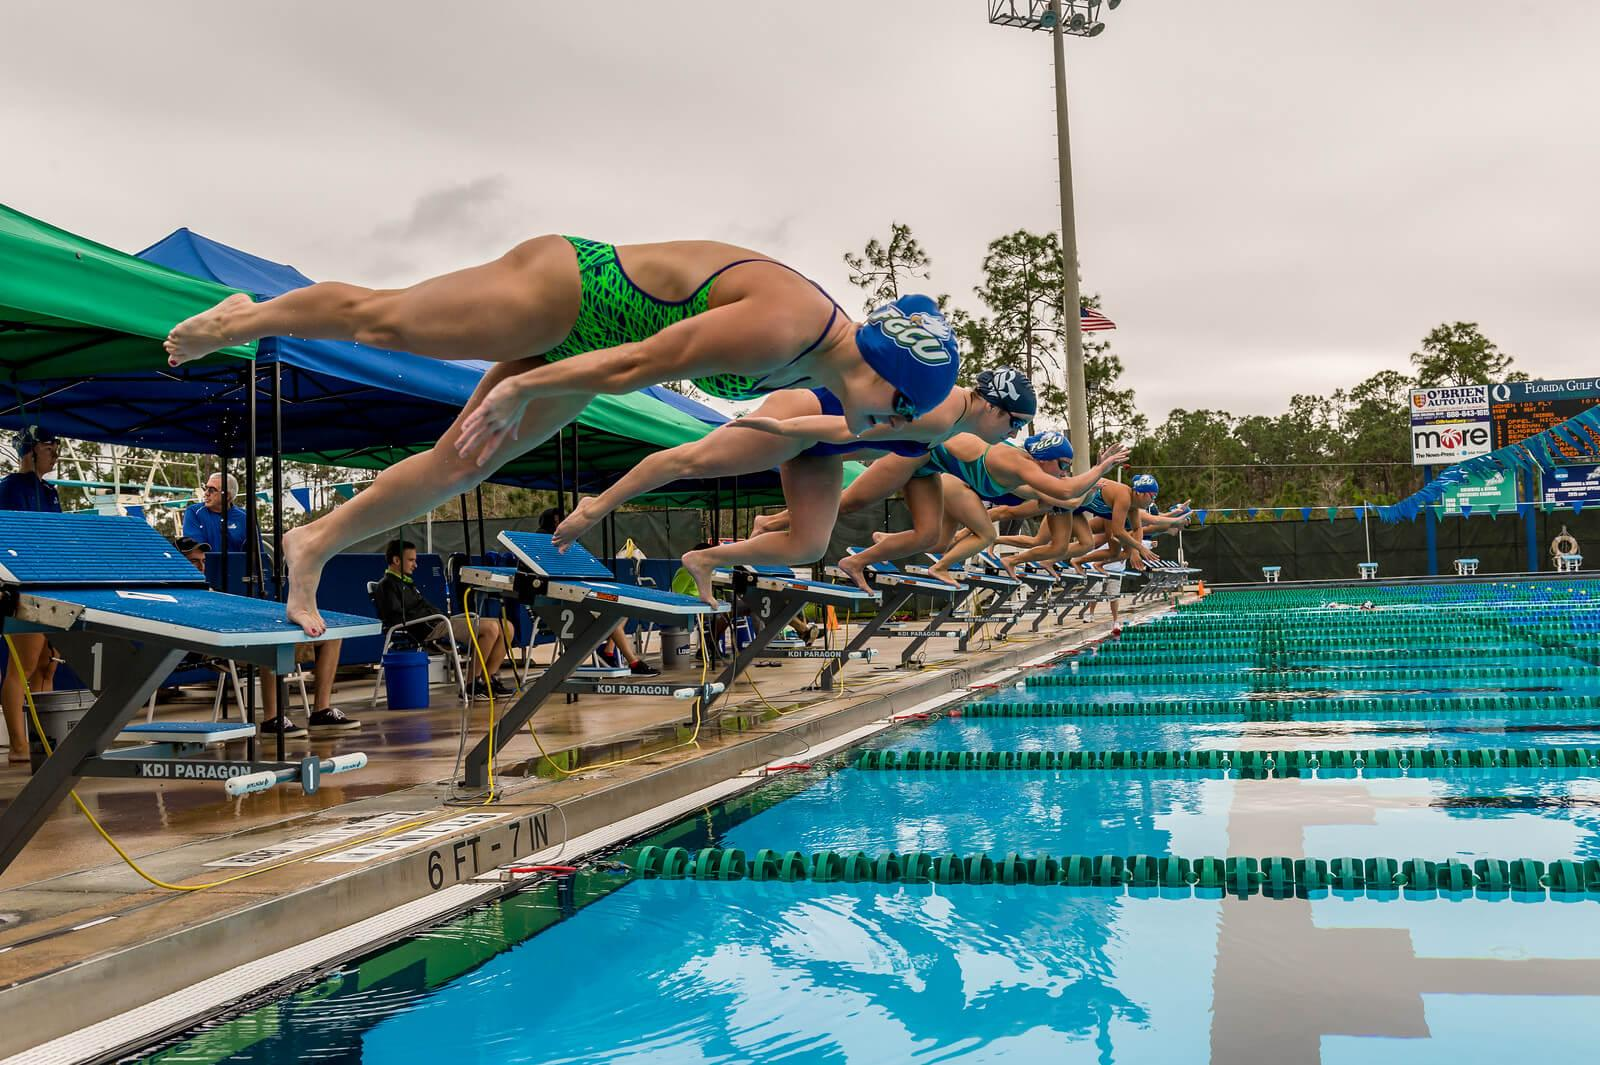 FGCU returns to the pool with a win against Rice